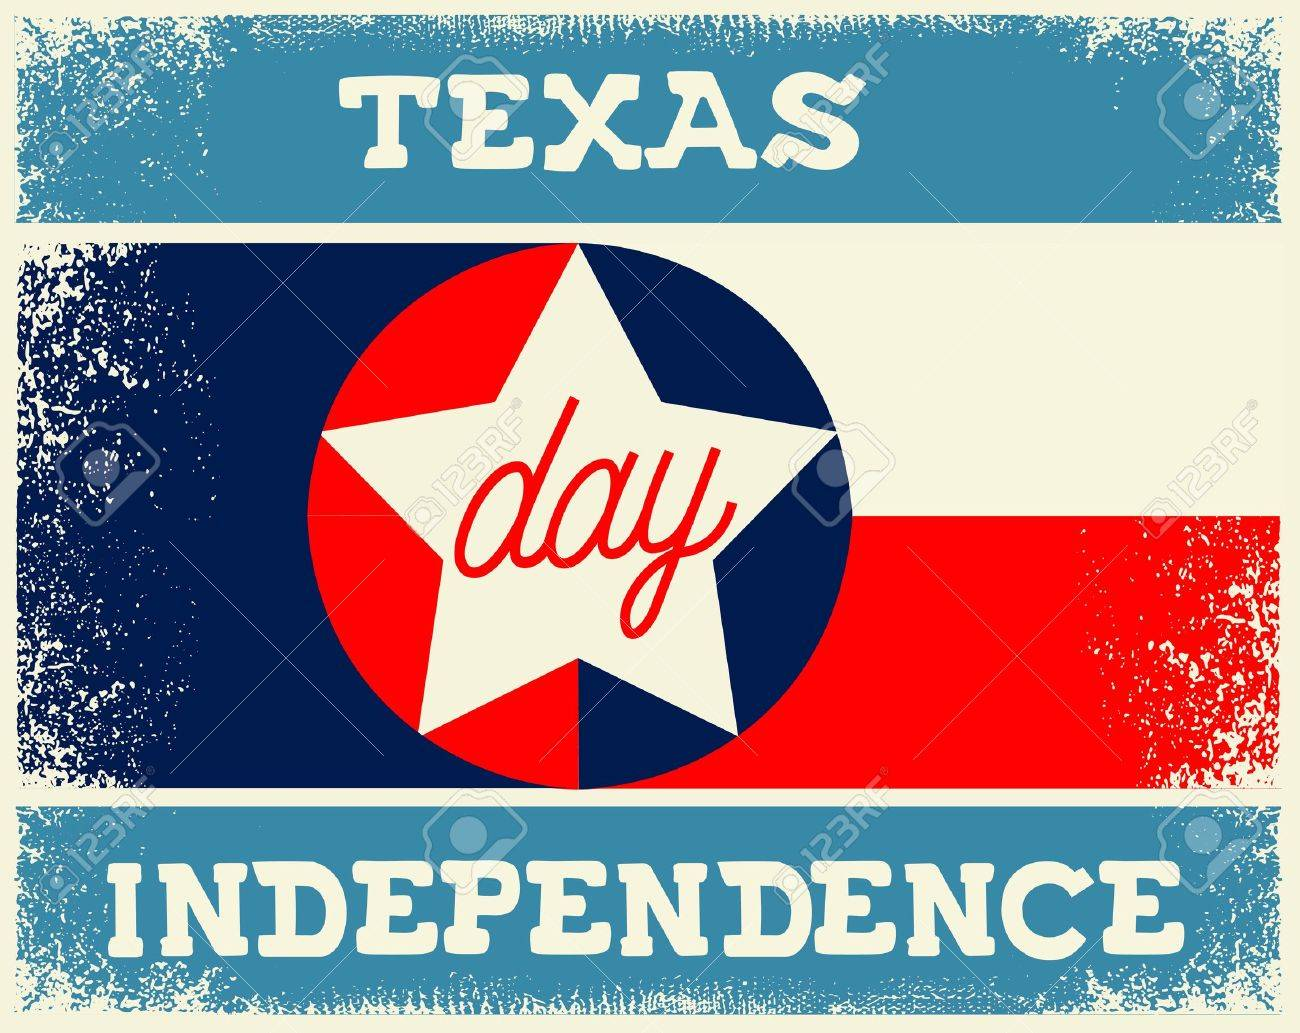 Texas Independence Day vintage old flag poster - 66115761